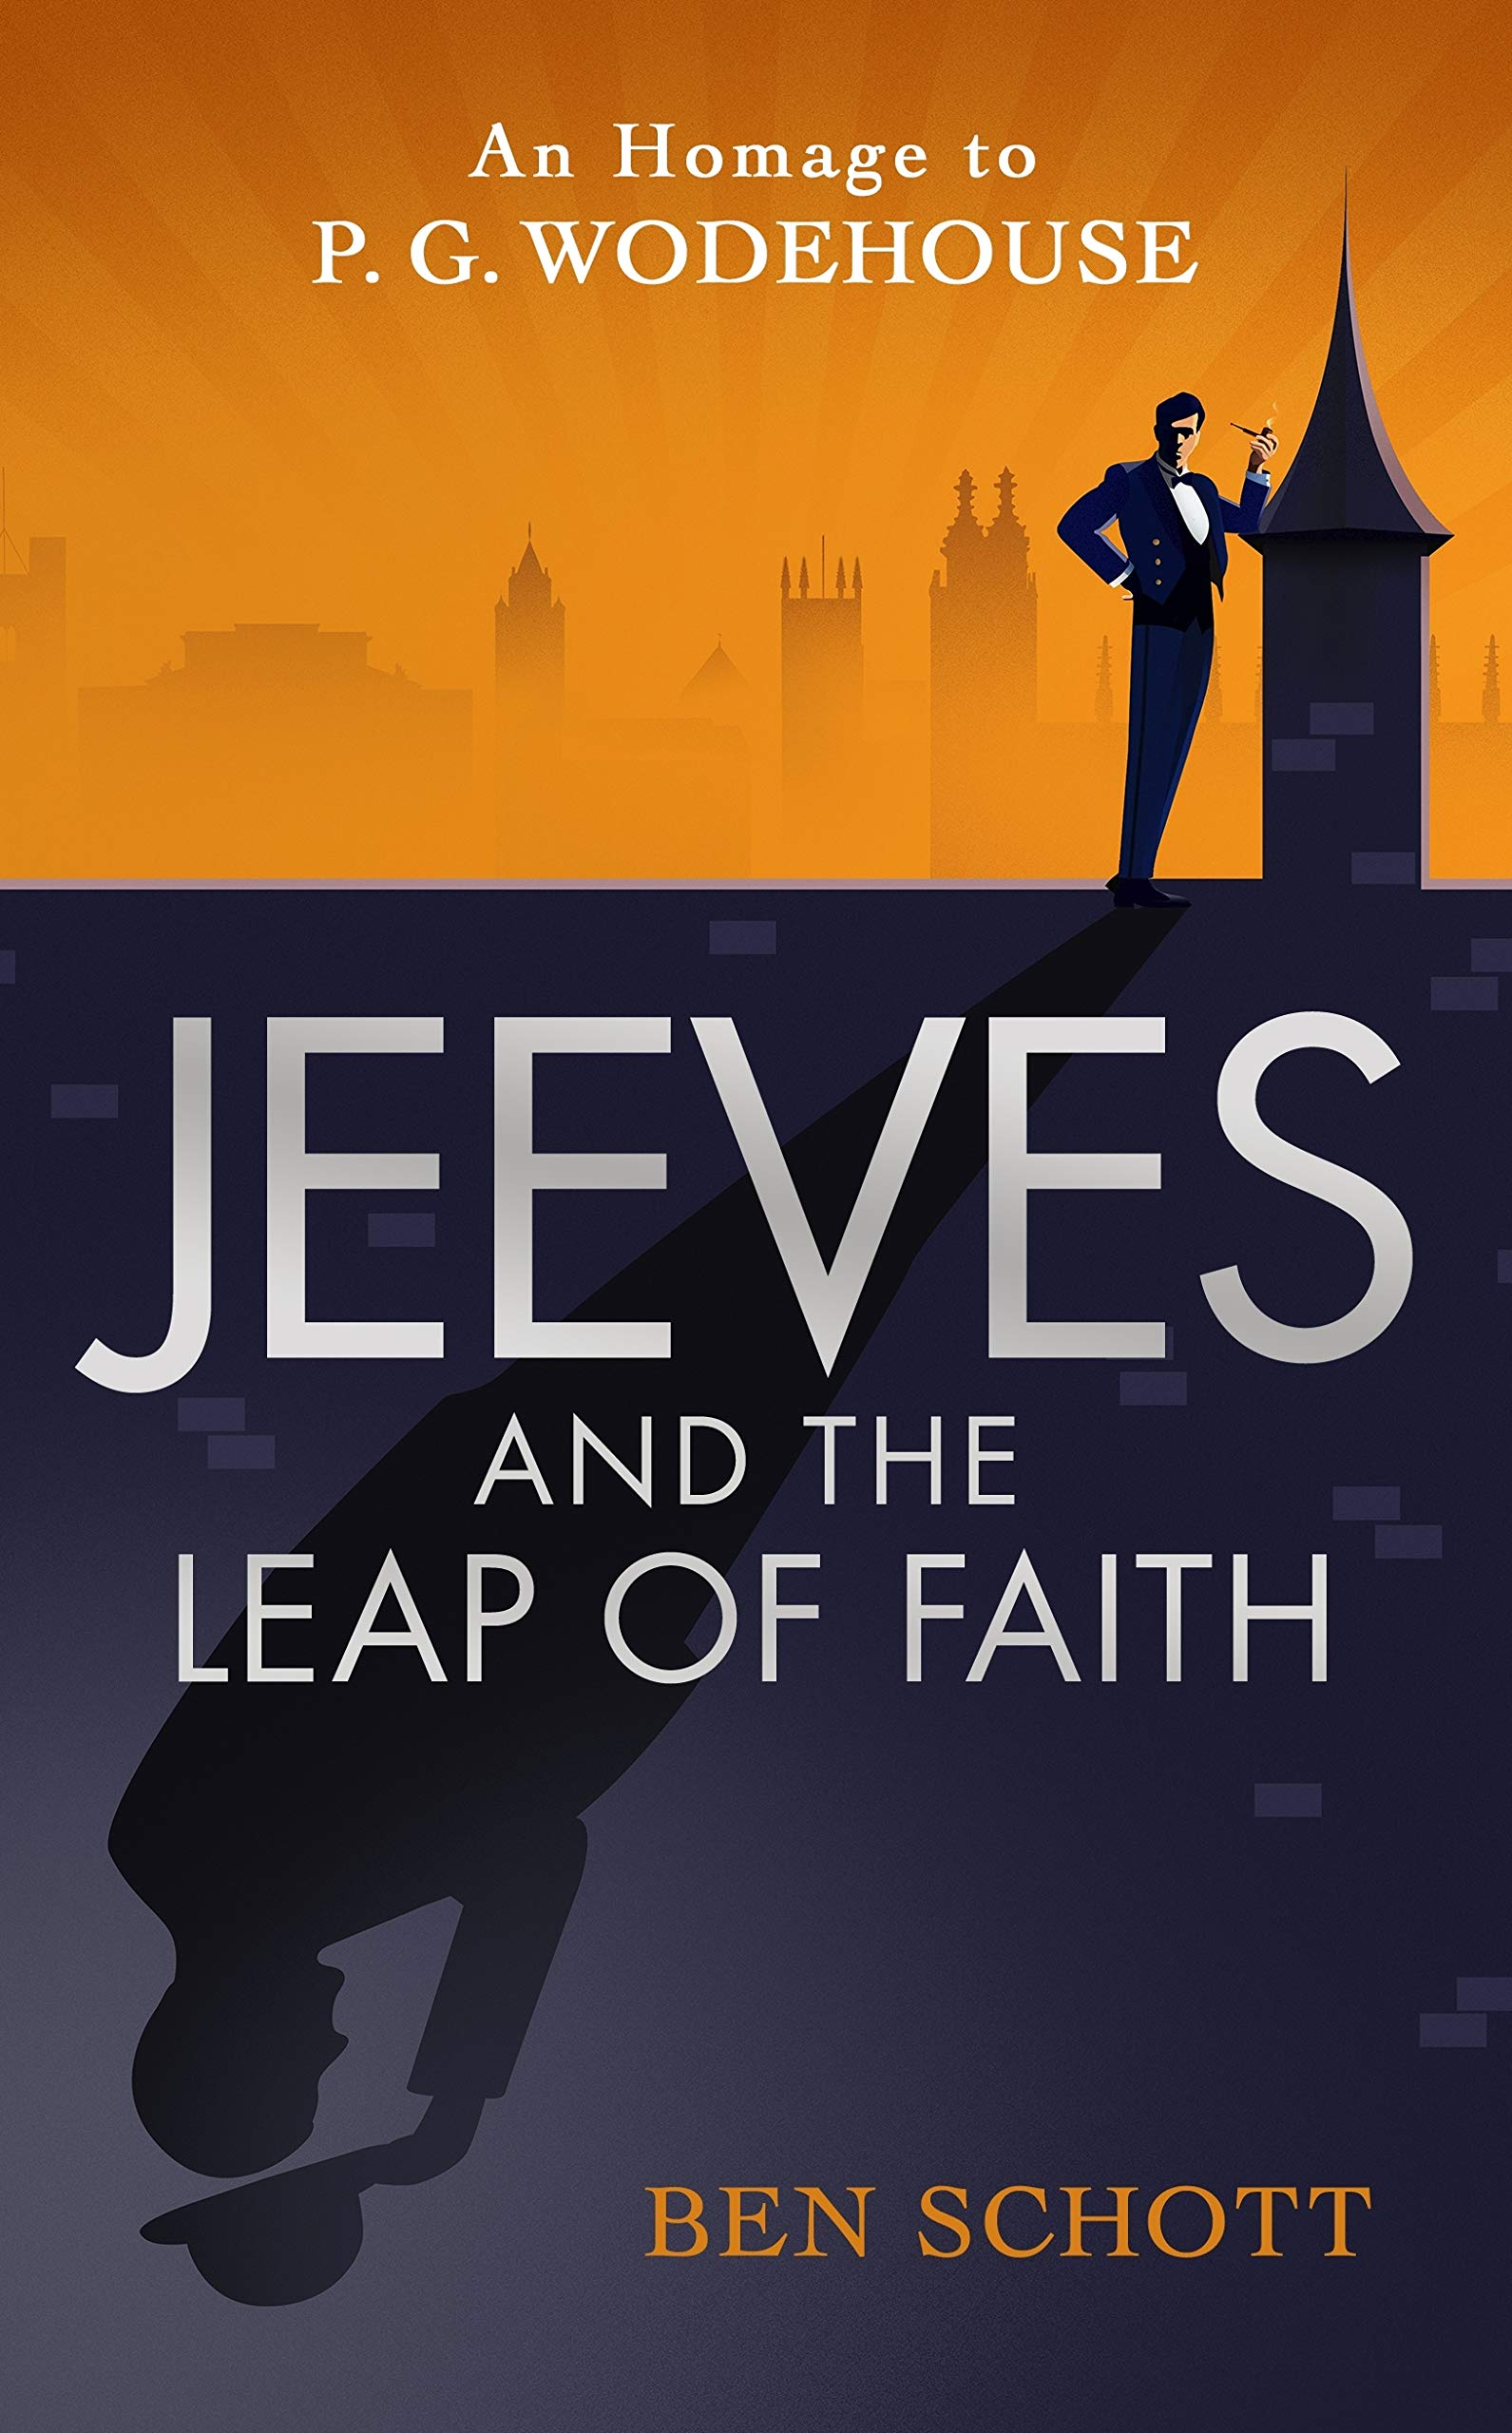 jeeves-and-the-leap-of-faith